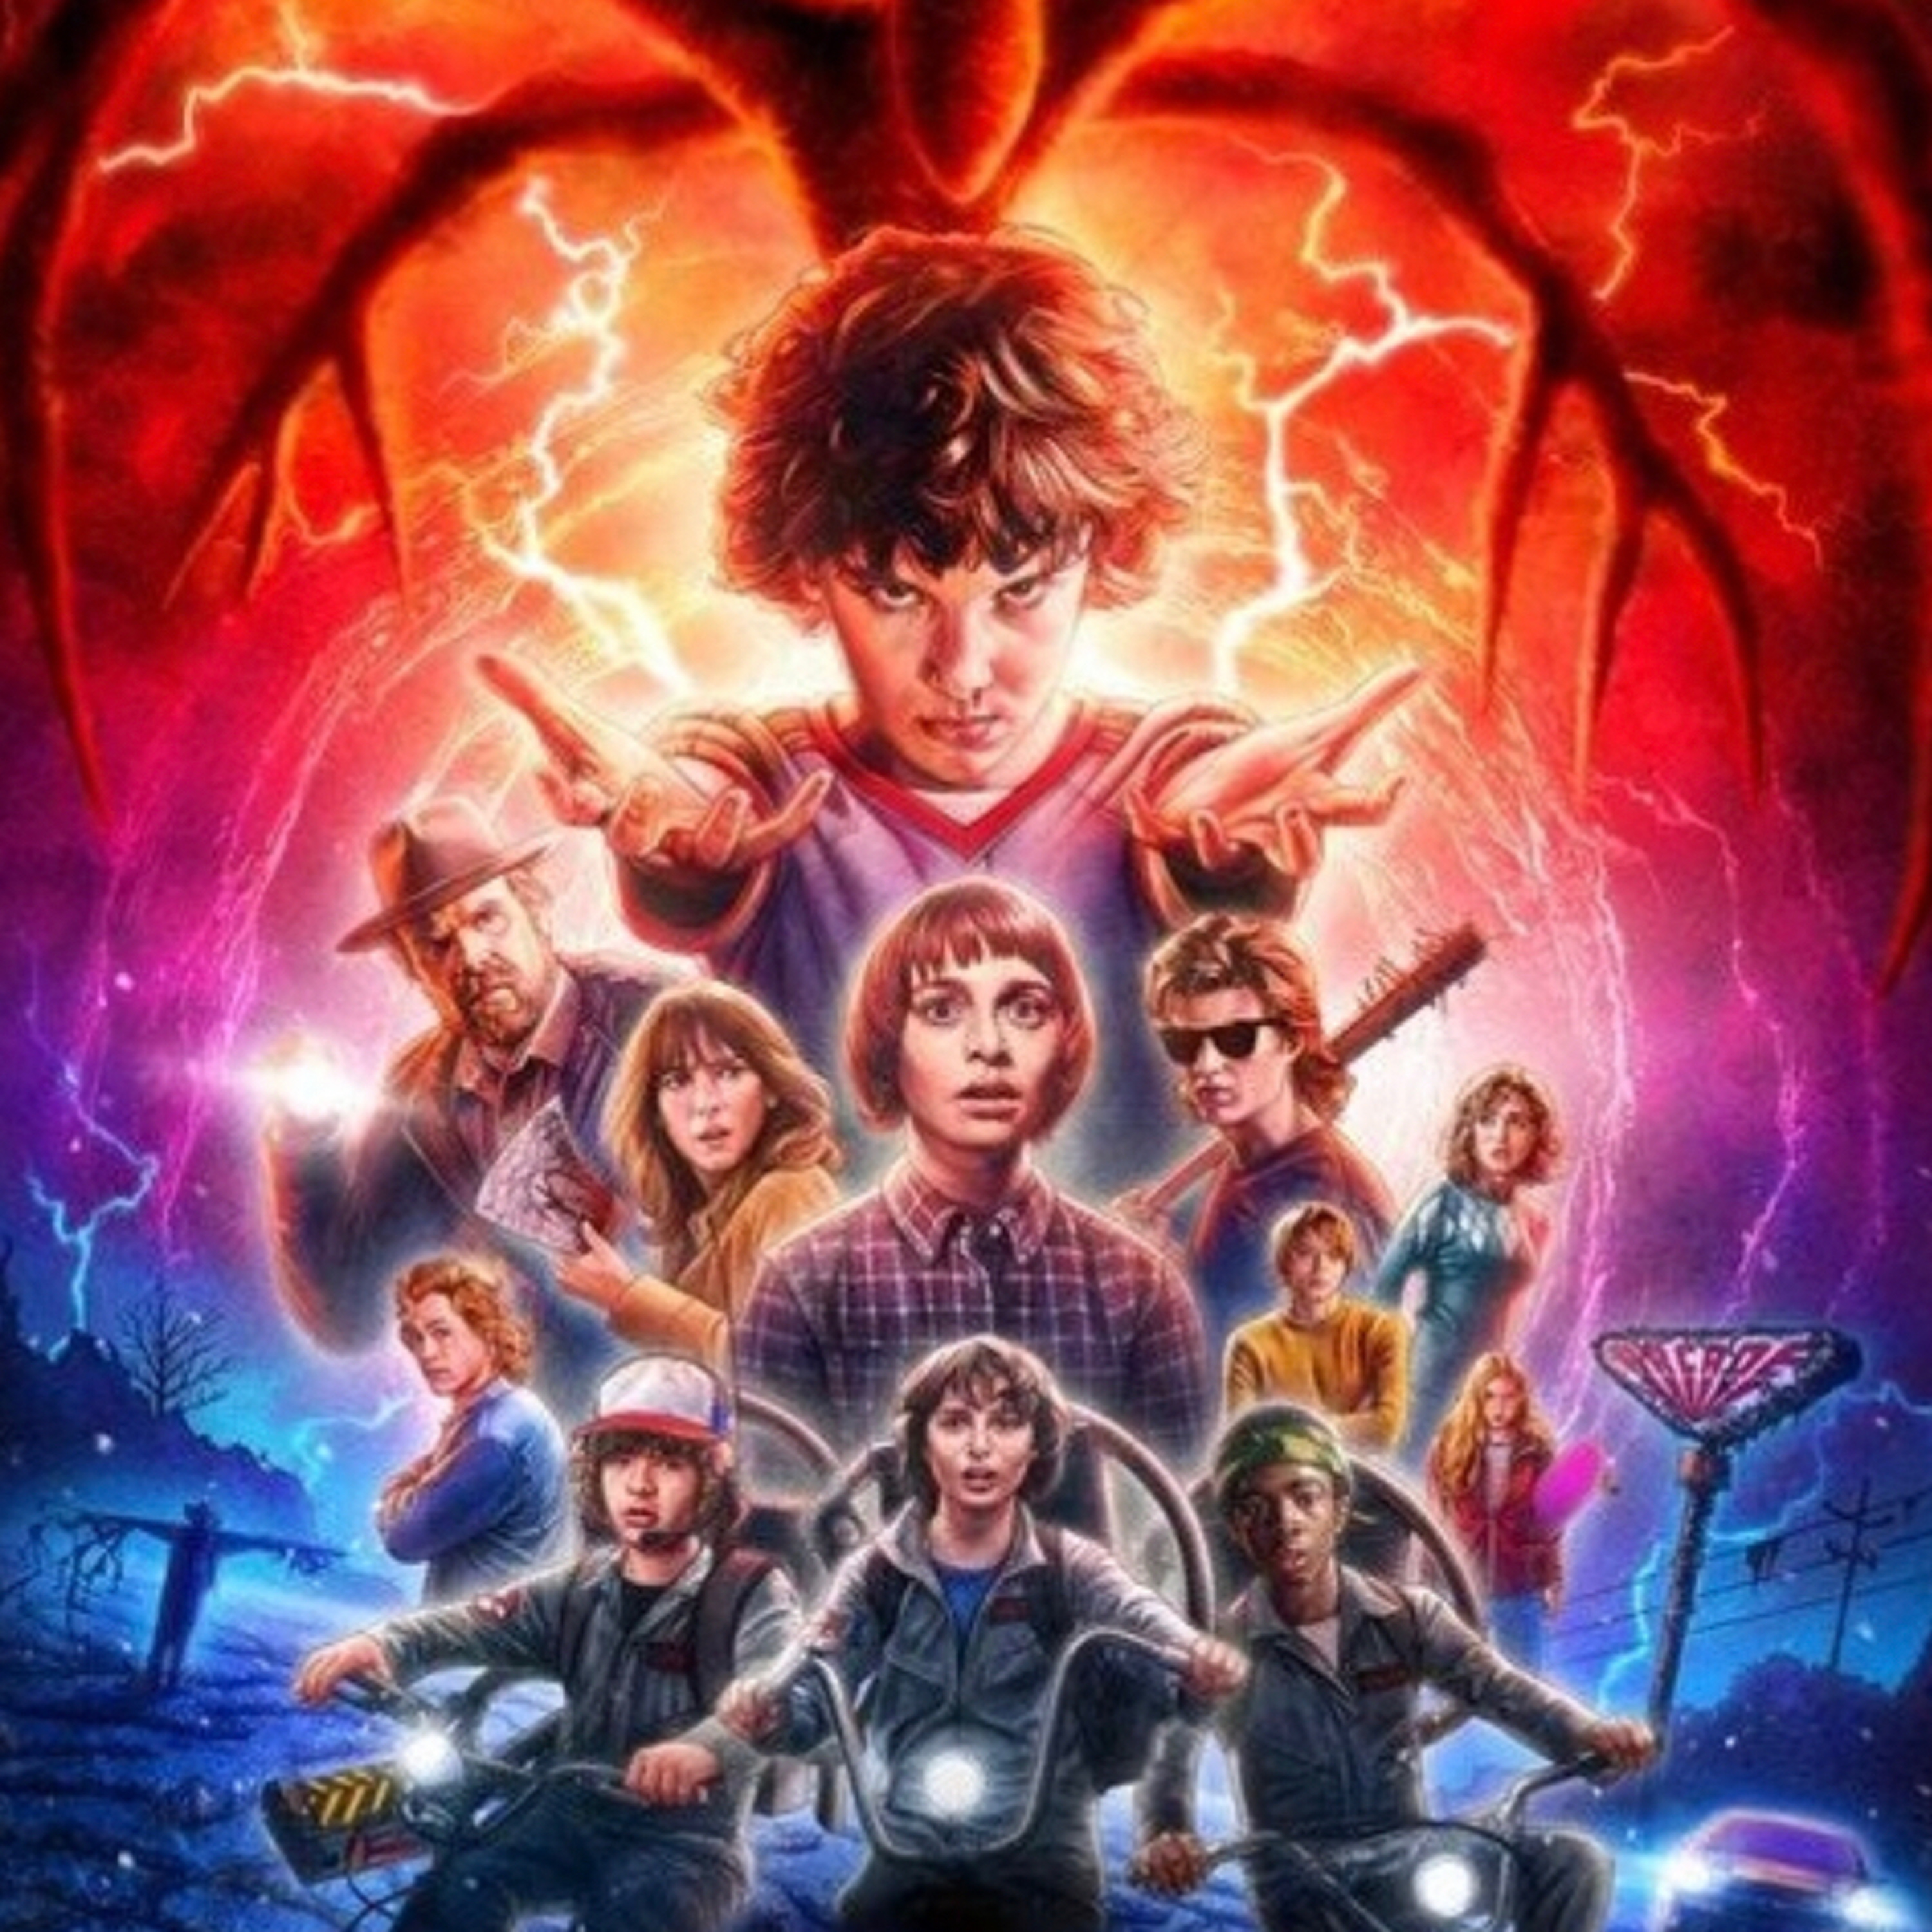 Stranger Things Season 3 Trailer, Hosting the DC Comics News Spinner Rack Podcast, A Podcast Prediction Comes True, GDC 2019 is Here, and a Preview of My Interview with Wine Reviewer Steve Heimoff